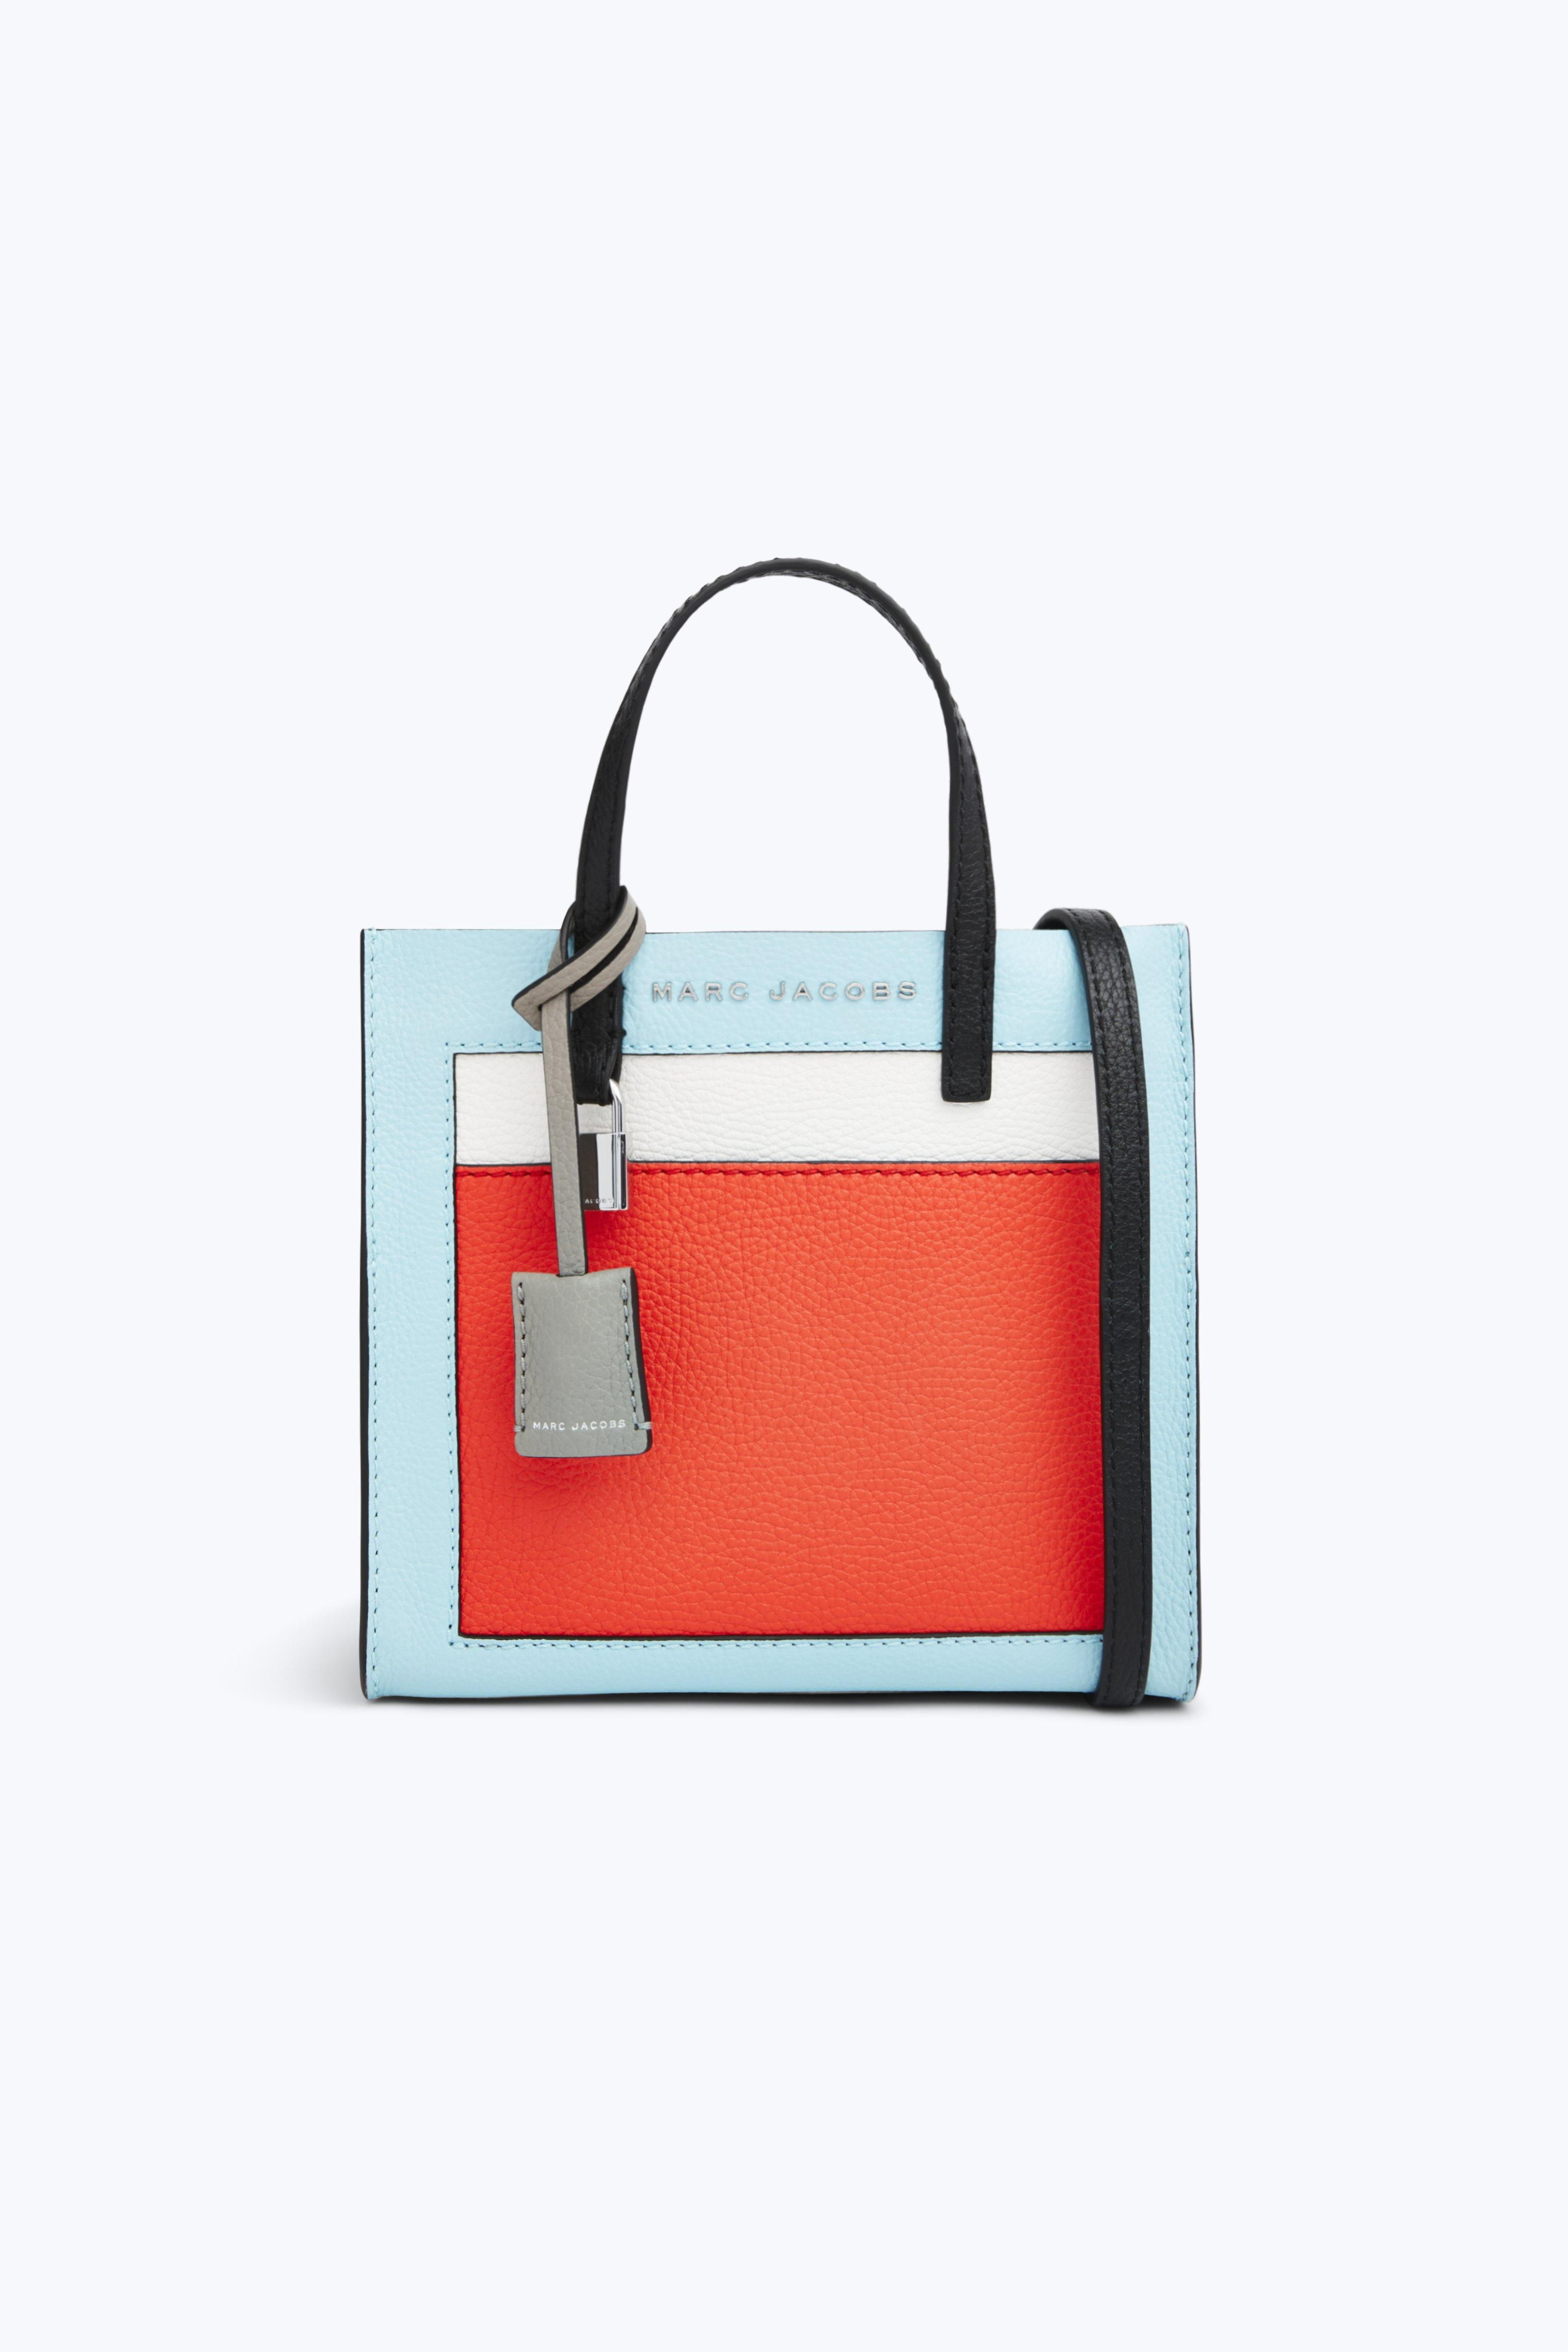 Lyst - Marc Jacobs The Colorblocked Mini Grind Bag 7f046df8ddf3